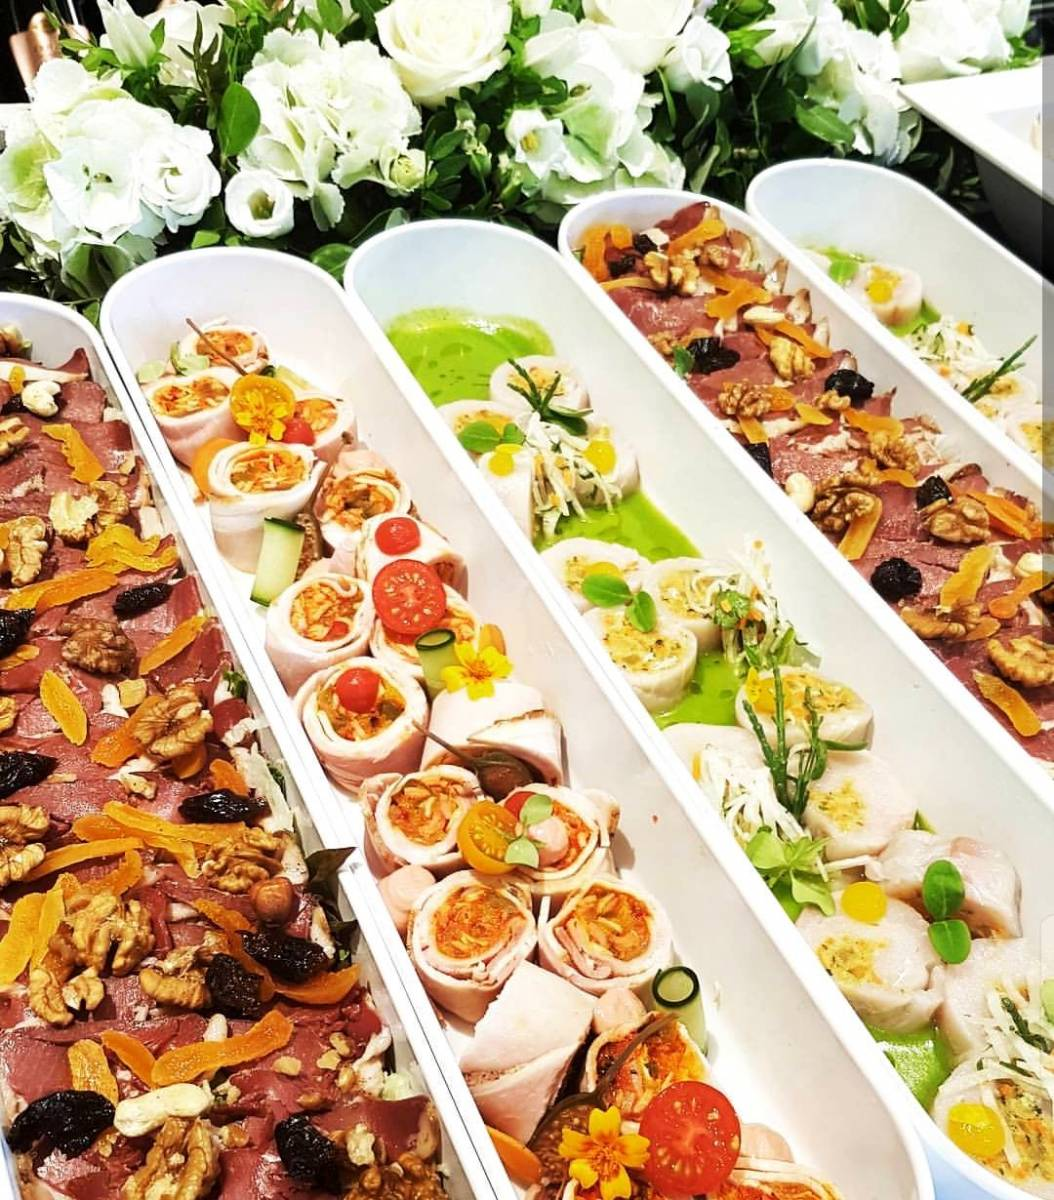 Cardinal Catering - Catering - Cateraar - House of Weddings - 6